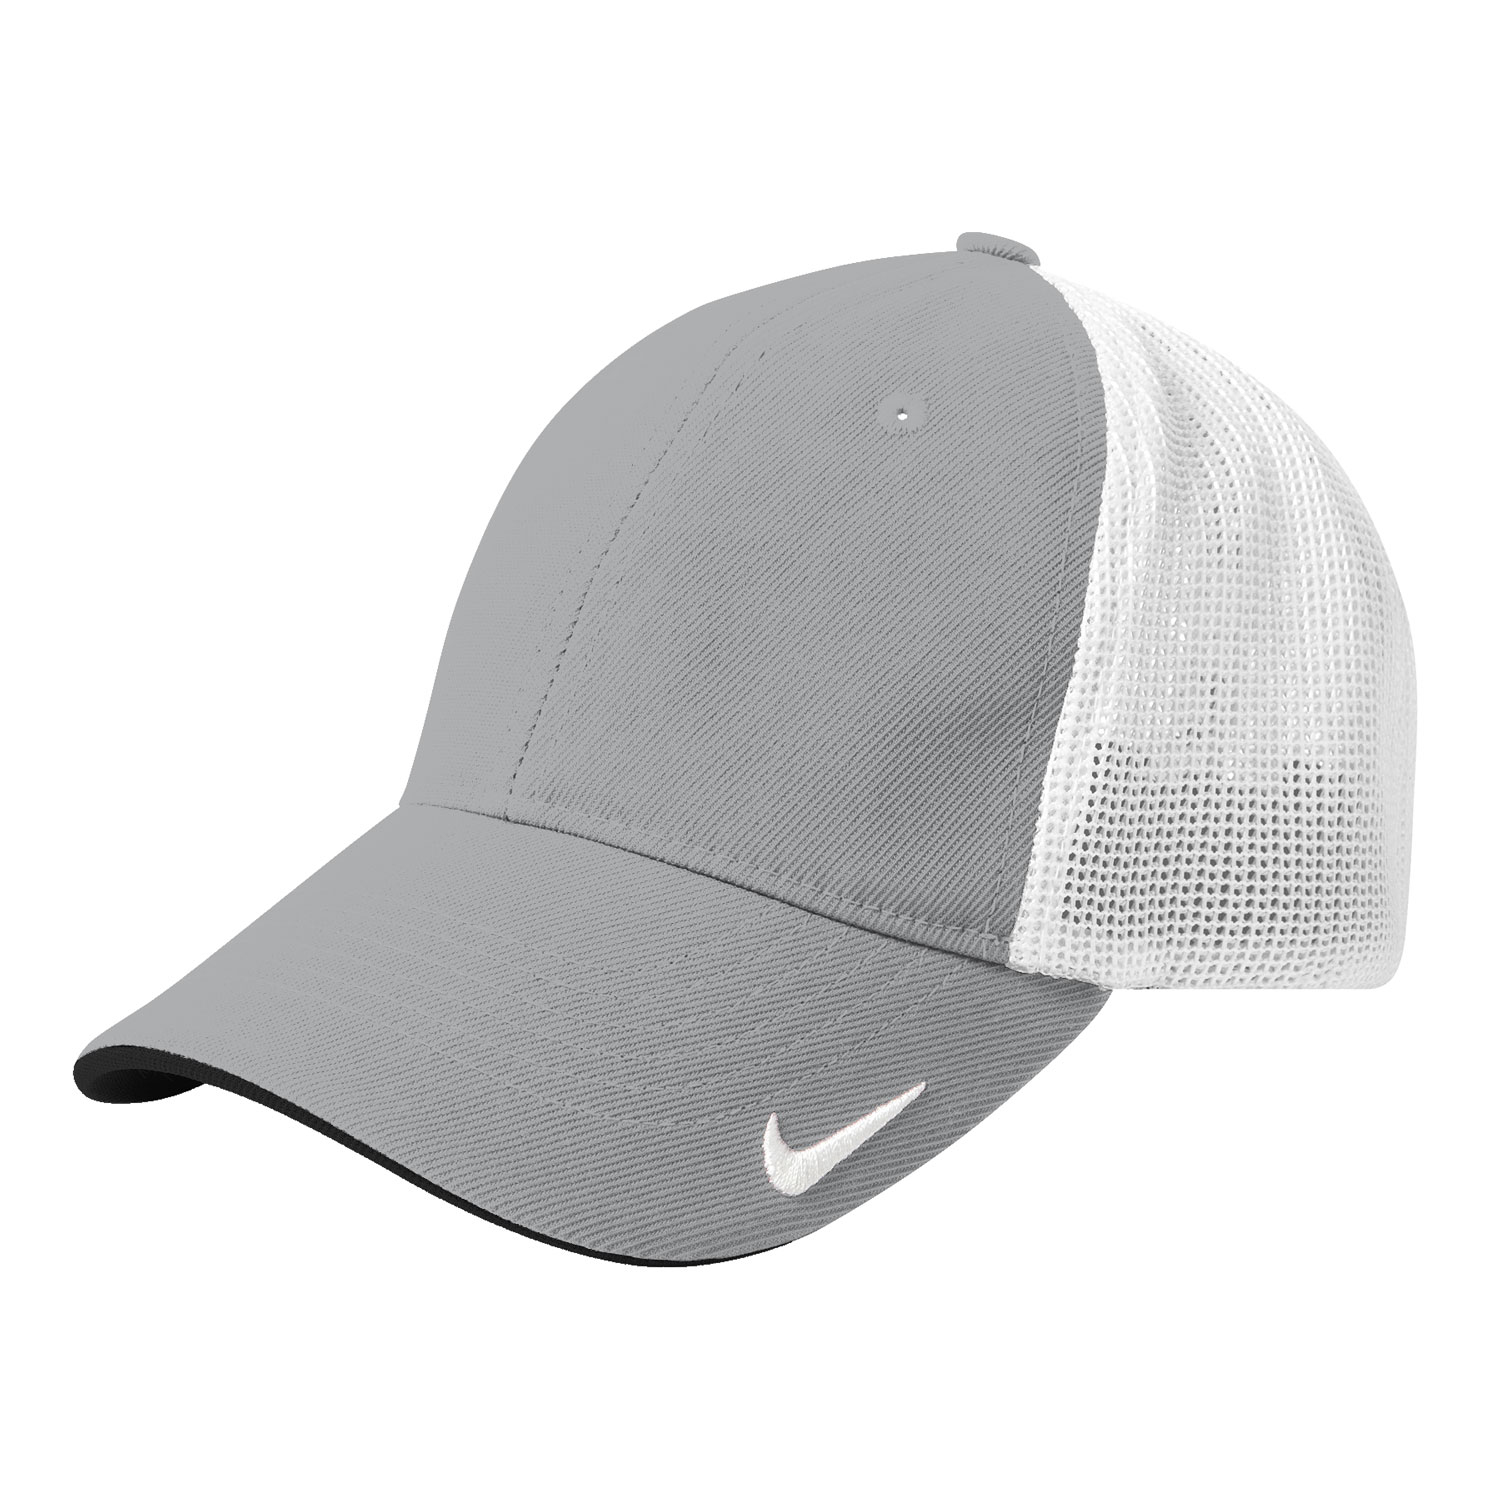 nike golf mesh back cap cherie4art commercial embroidery